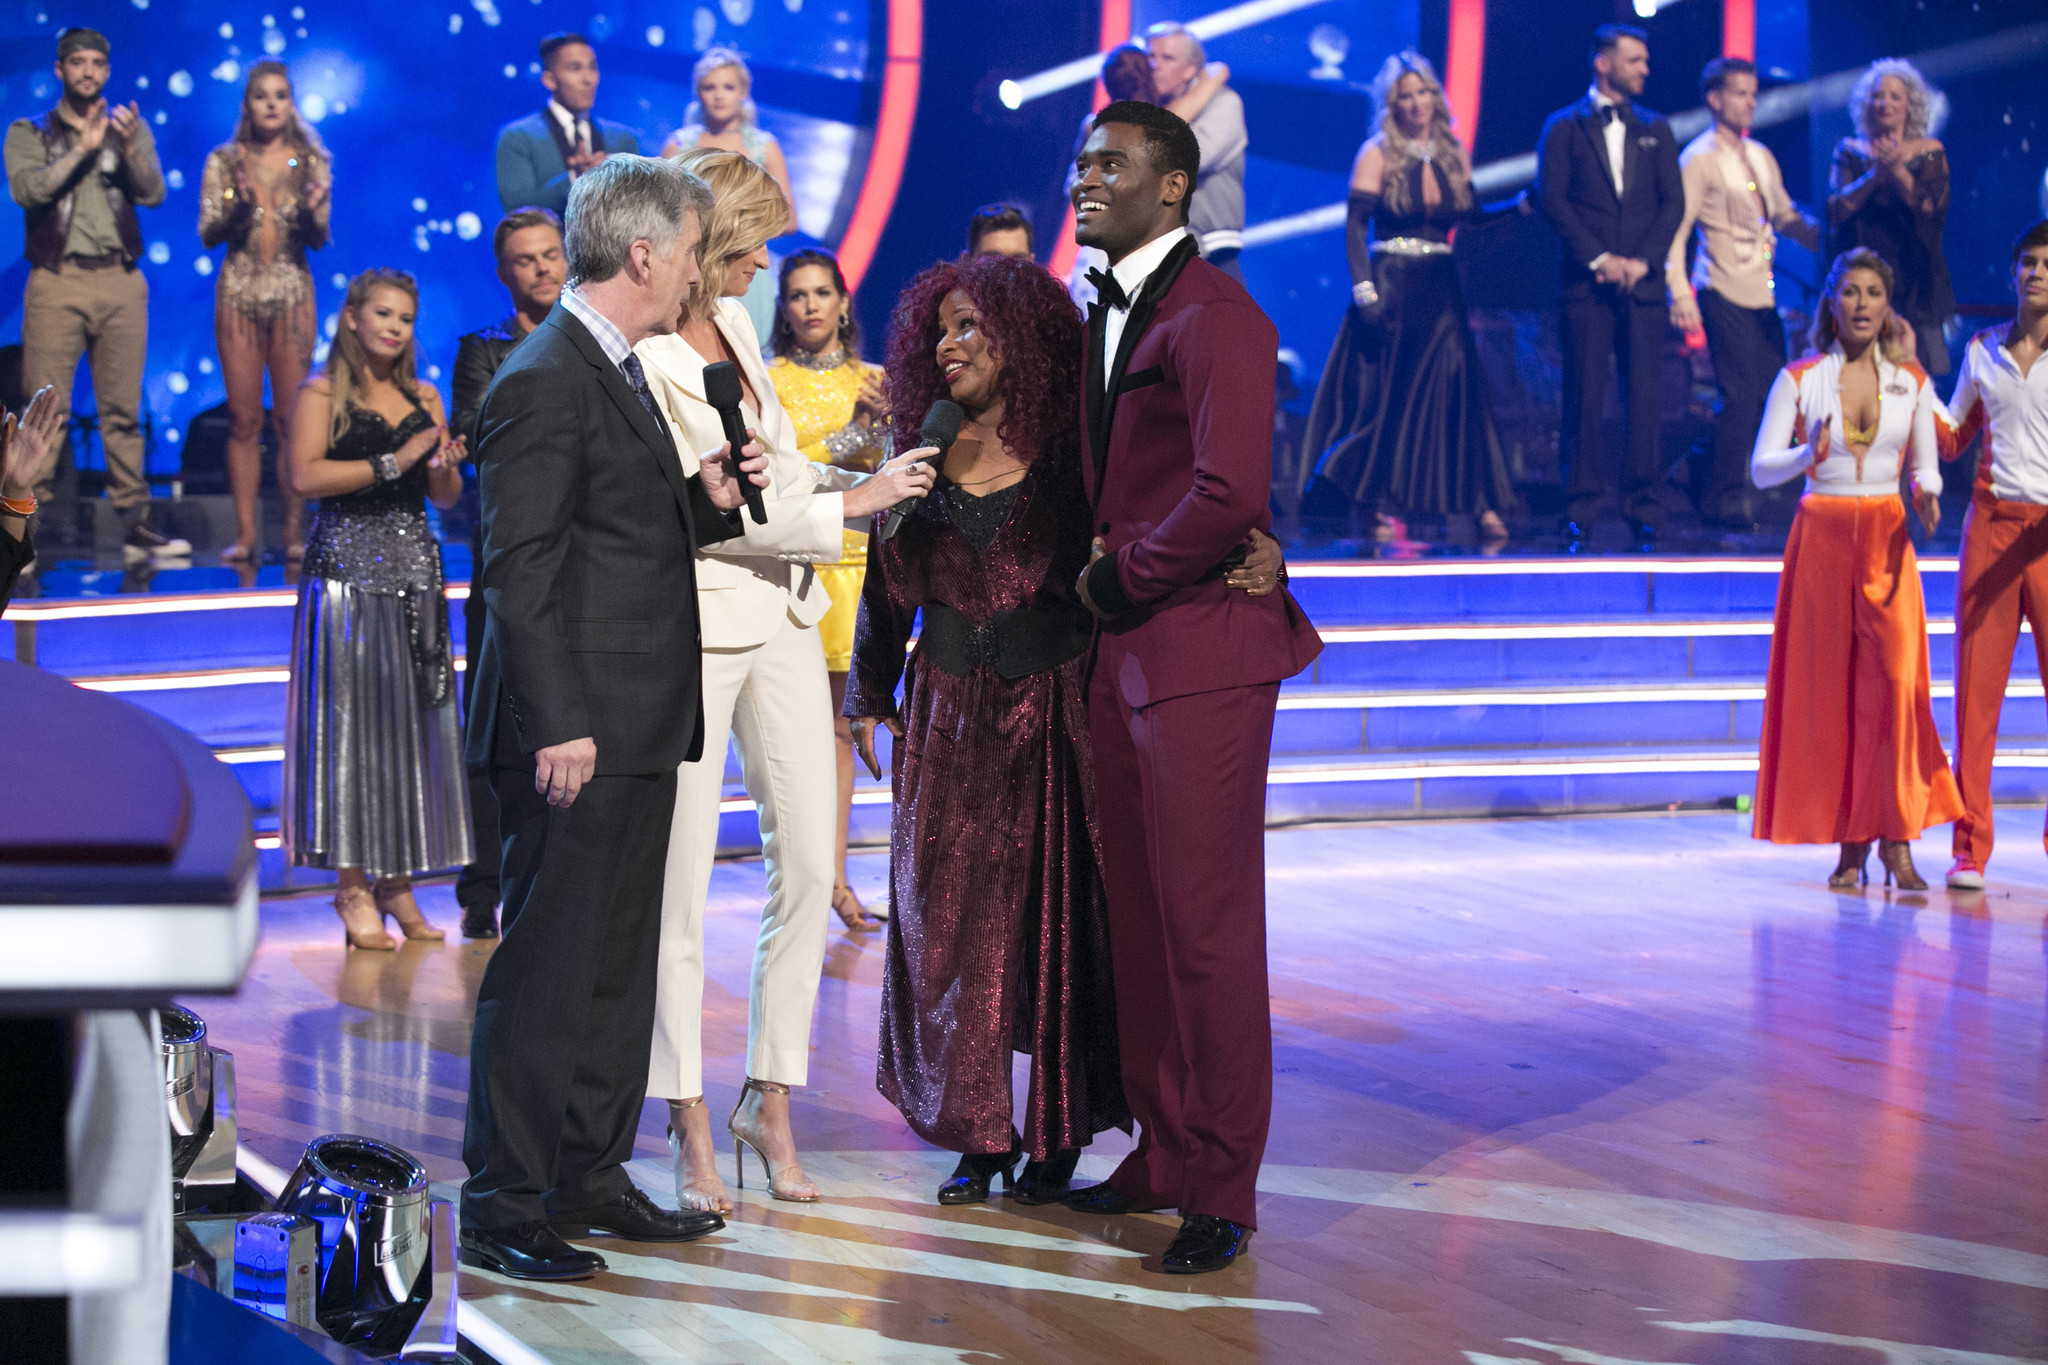 la-et-st-dancing-with-the-stars-recap-chaka-khan-goes-home-bindi-irwin-rocks-the-top-spot Chaka Khan